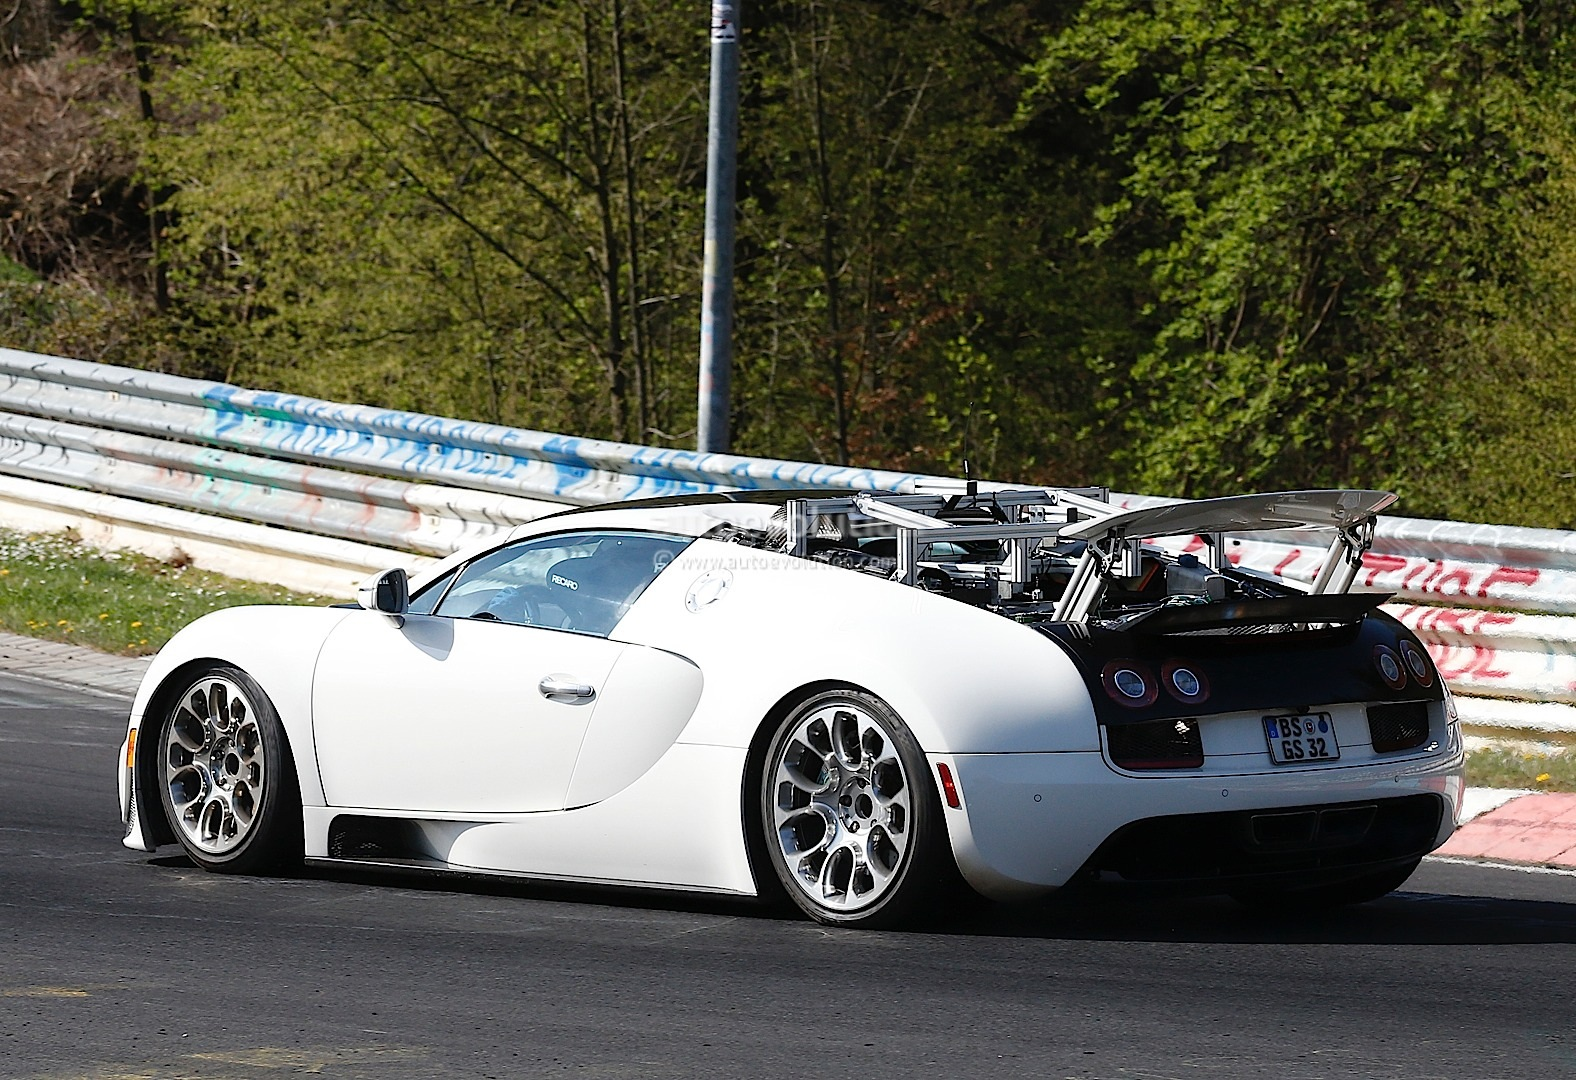 bugatti veyron test mules spied on nurburgring hint at. Black Bedroom Furniture Sets. Home Design Ideas